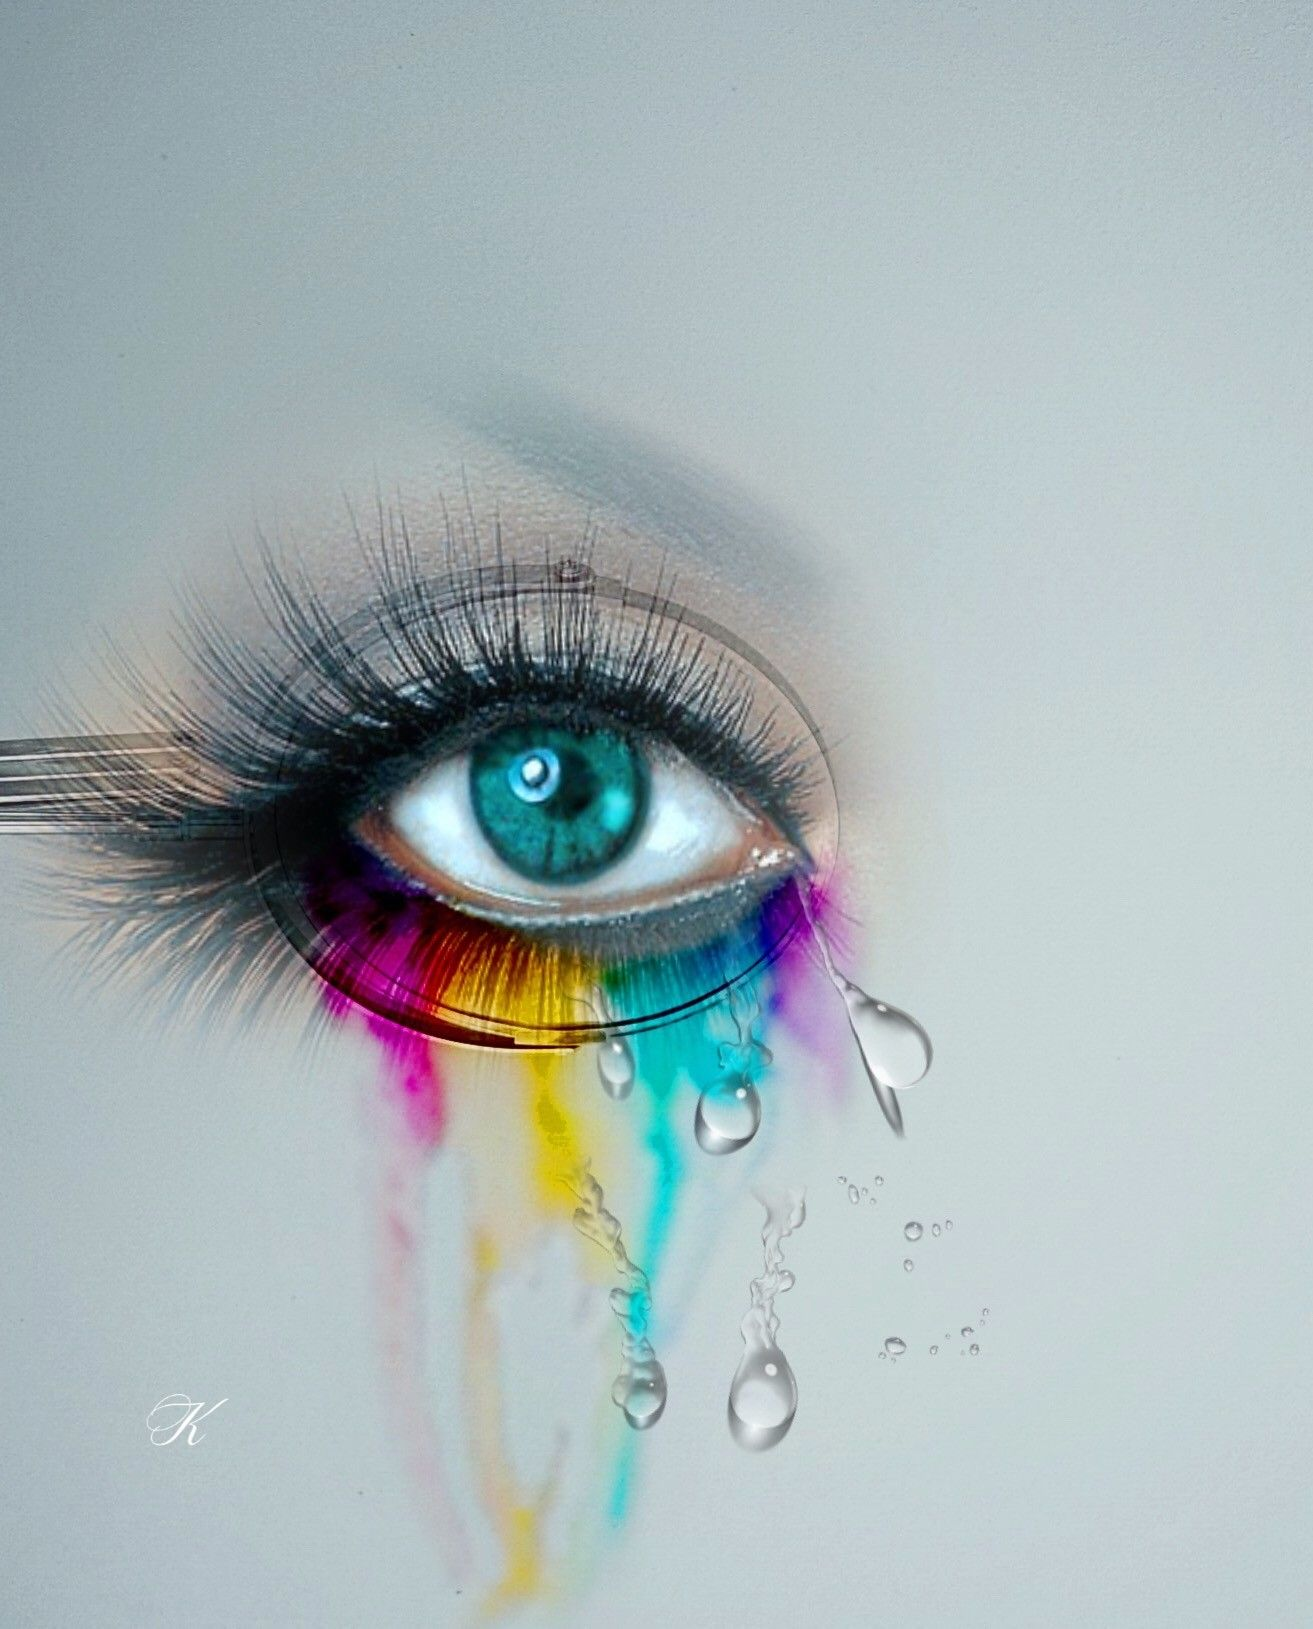 Pin By Ke On Eyes Eye Art Eyeball Art Eye Drawing